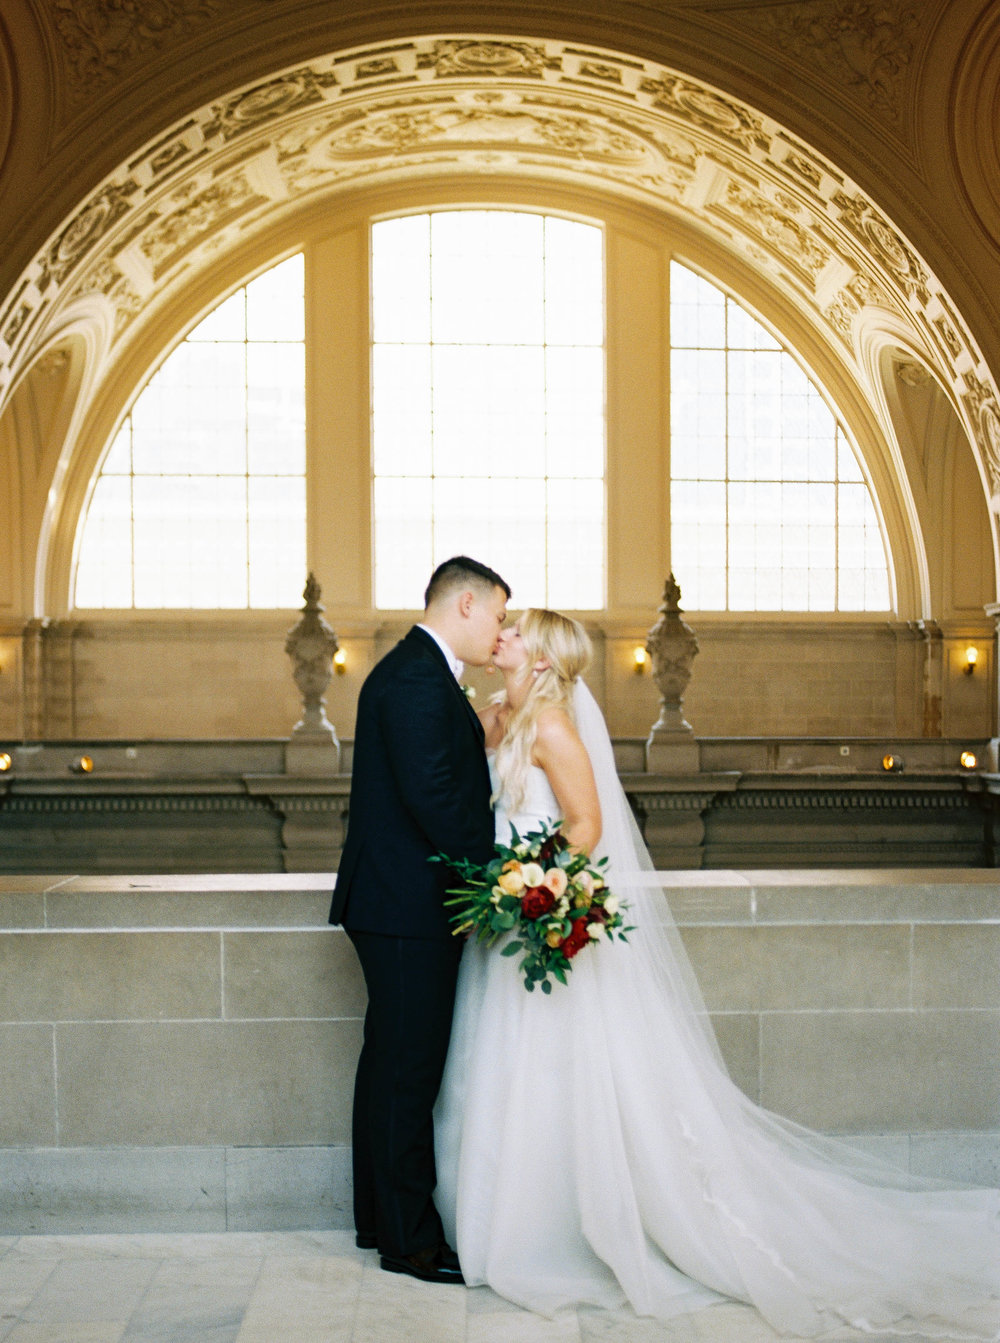 DennisRoyCoronel_Photography_SanFranciscoCityHall_Wedding-59.jpg